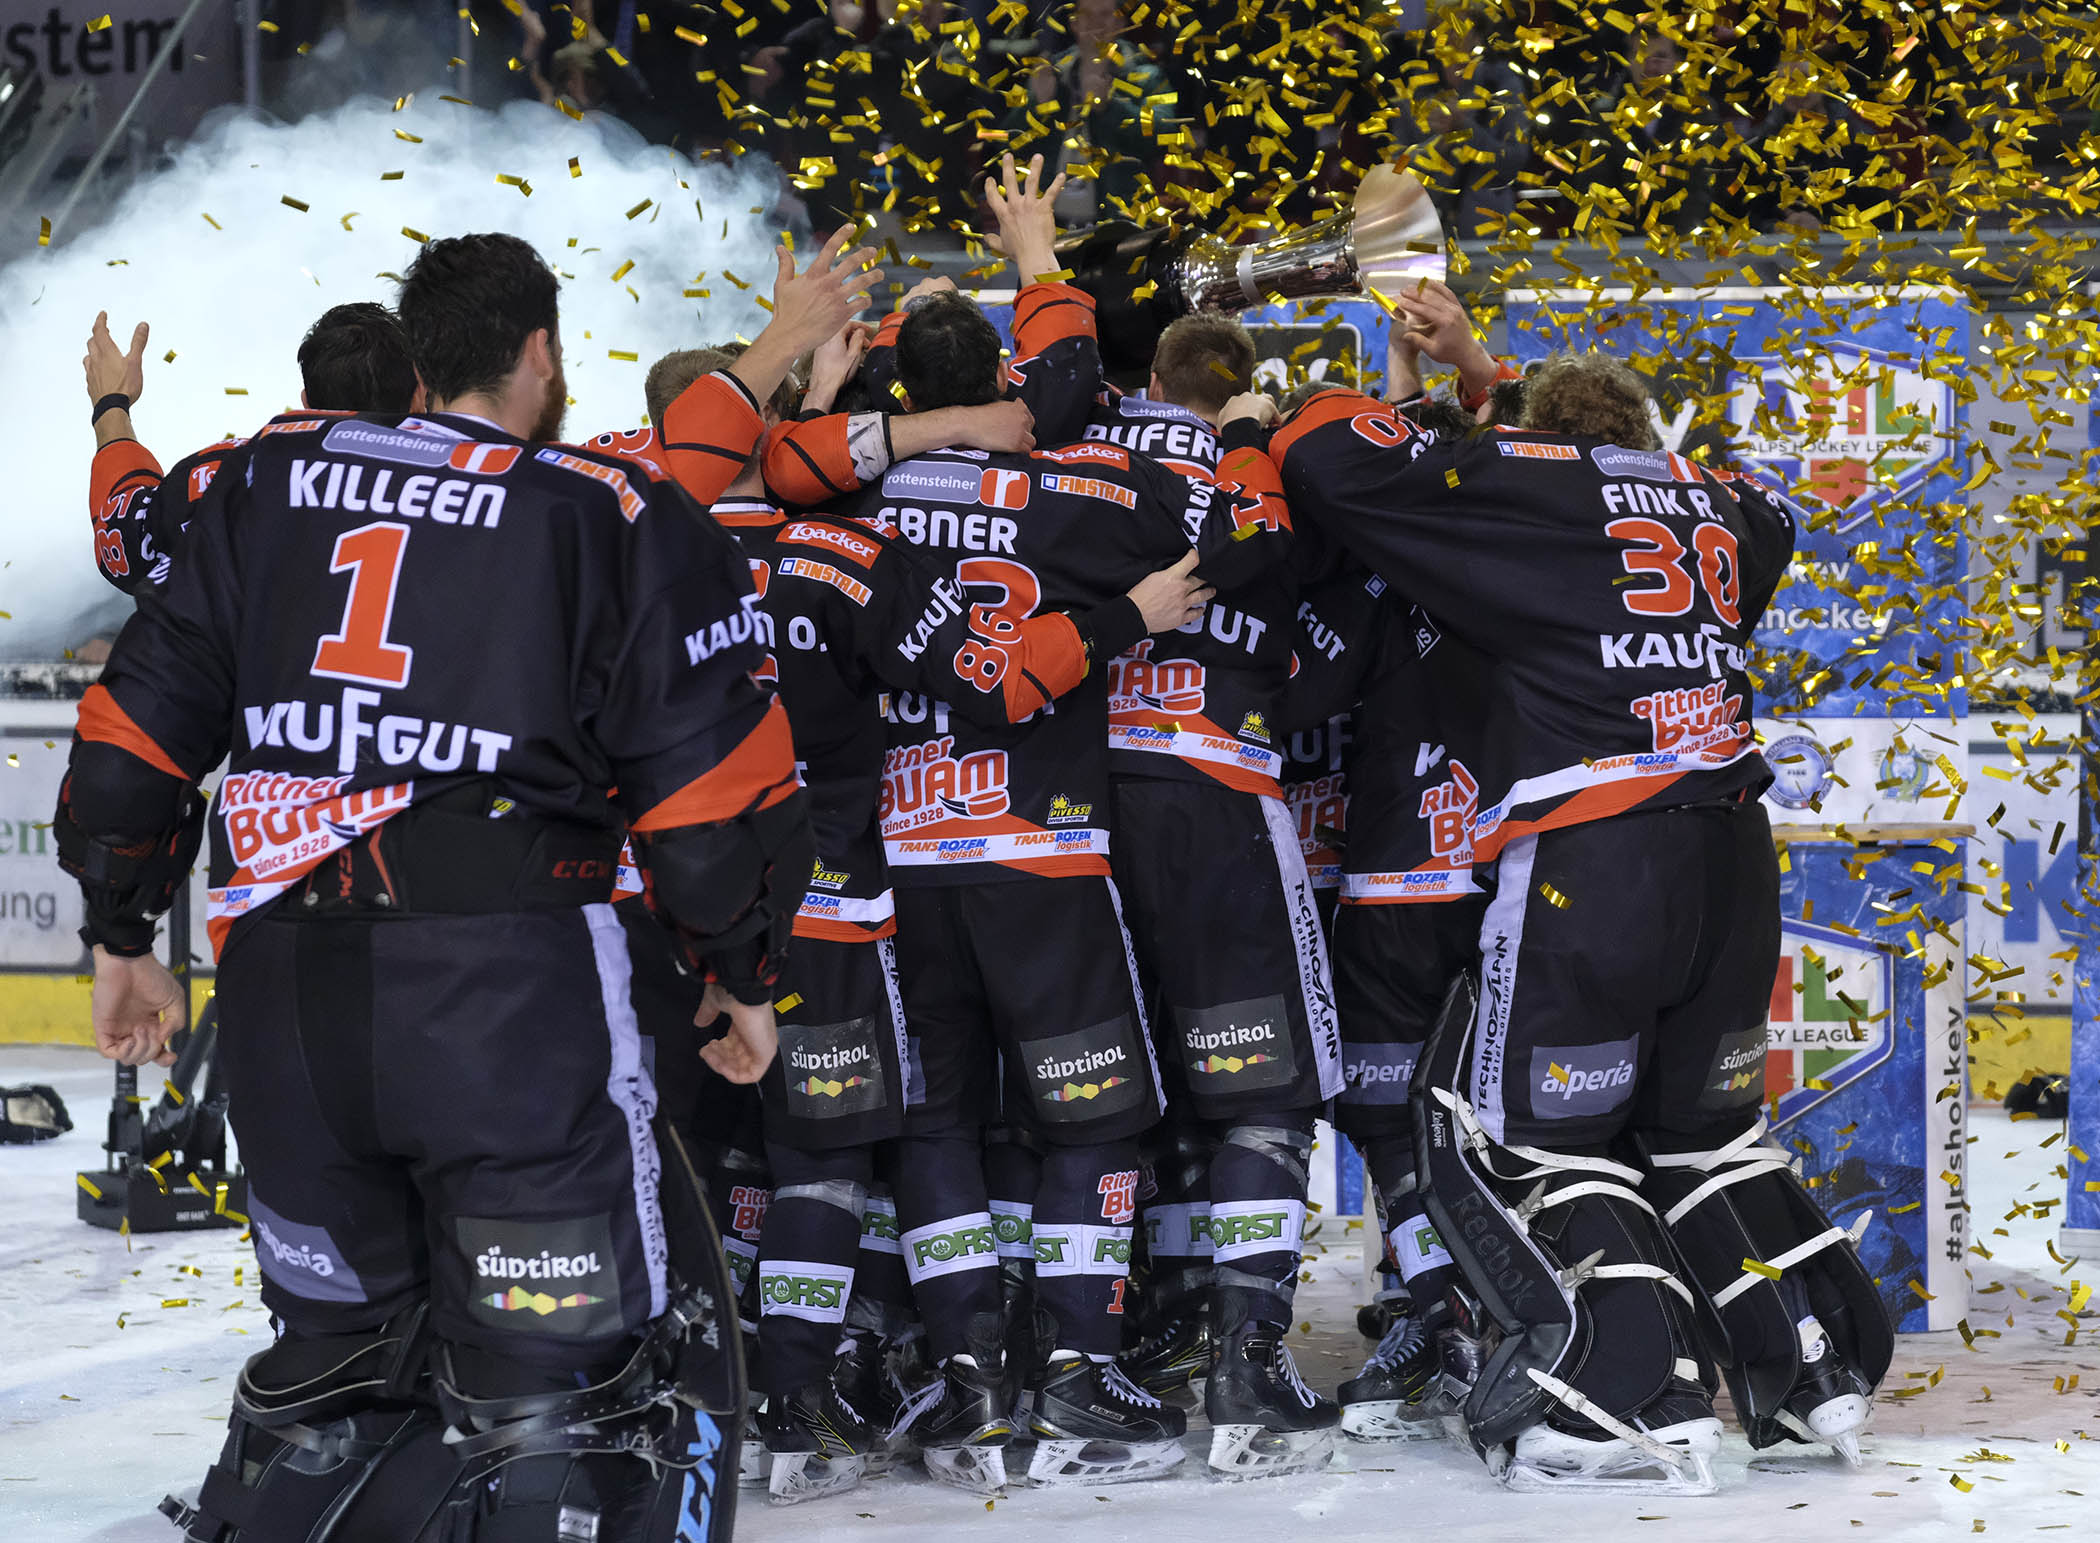 Ritten-Alps-Hockey-League-2017